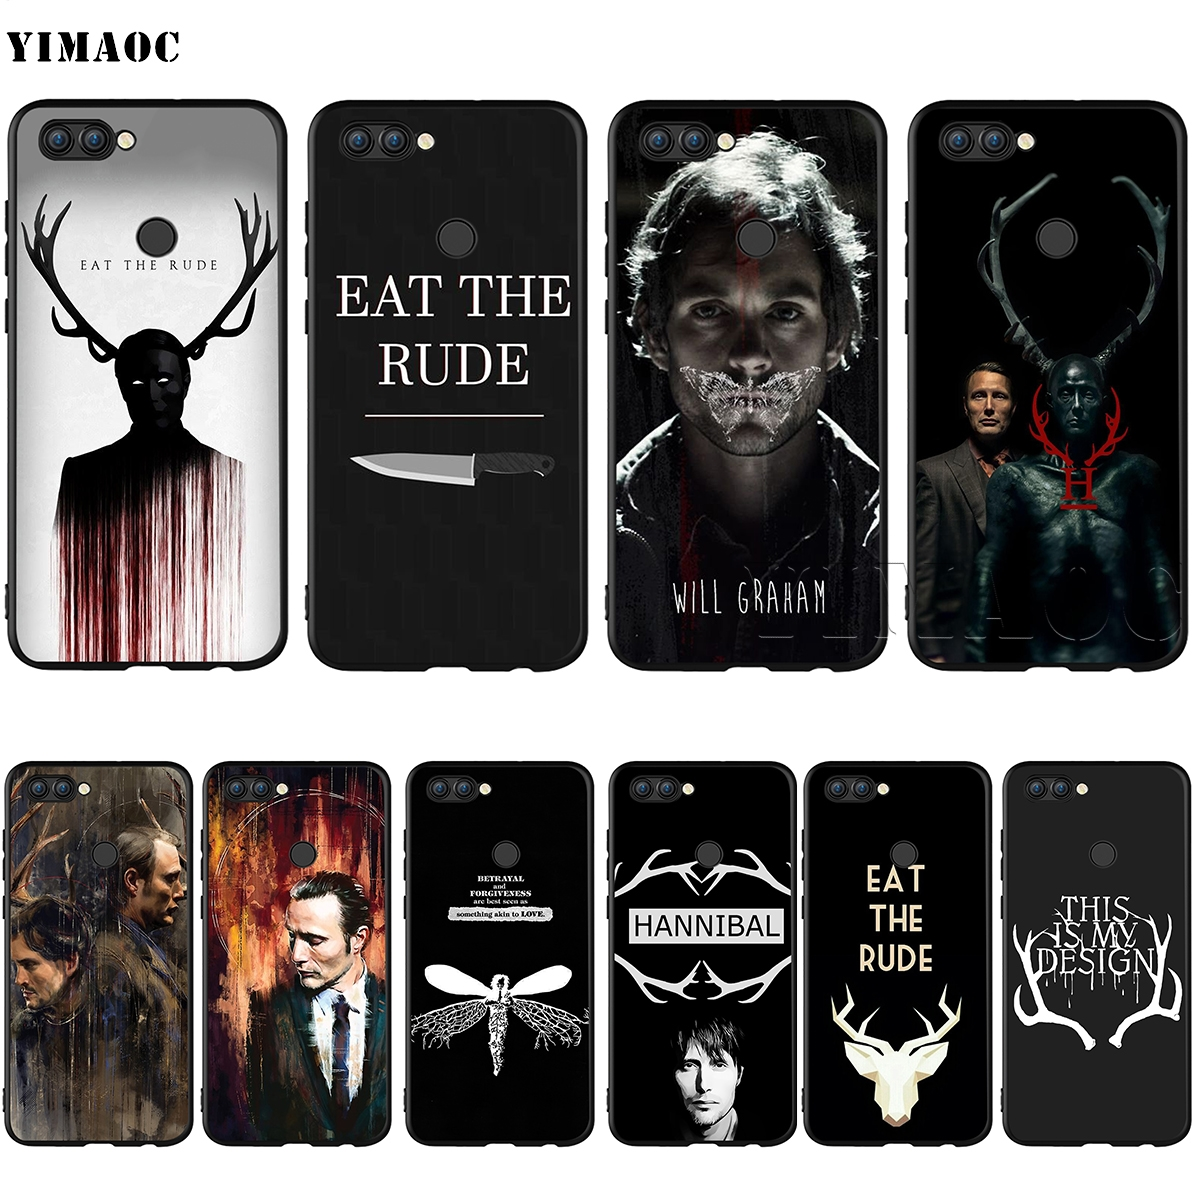 YIMAOC Hannibal Eat the Rude Silicone Case for Huawei Mate 10 P8 P9 P10 P20 Lite Pro P Y7 Y9 Smart Mini 2017 2018